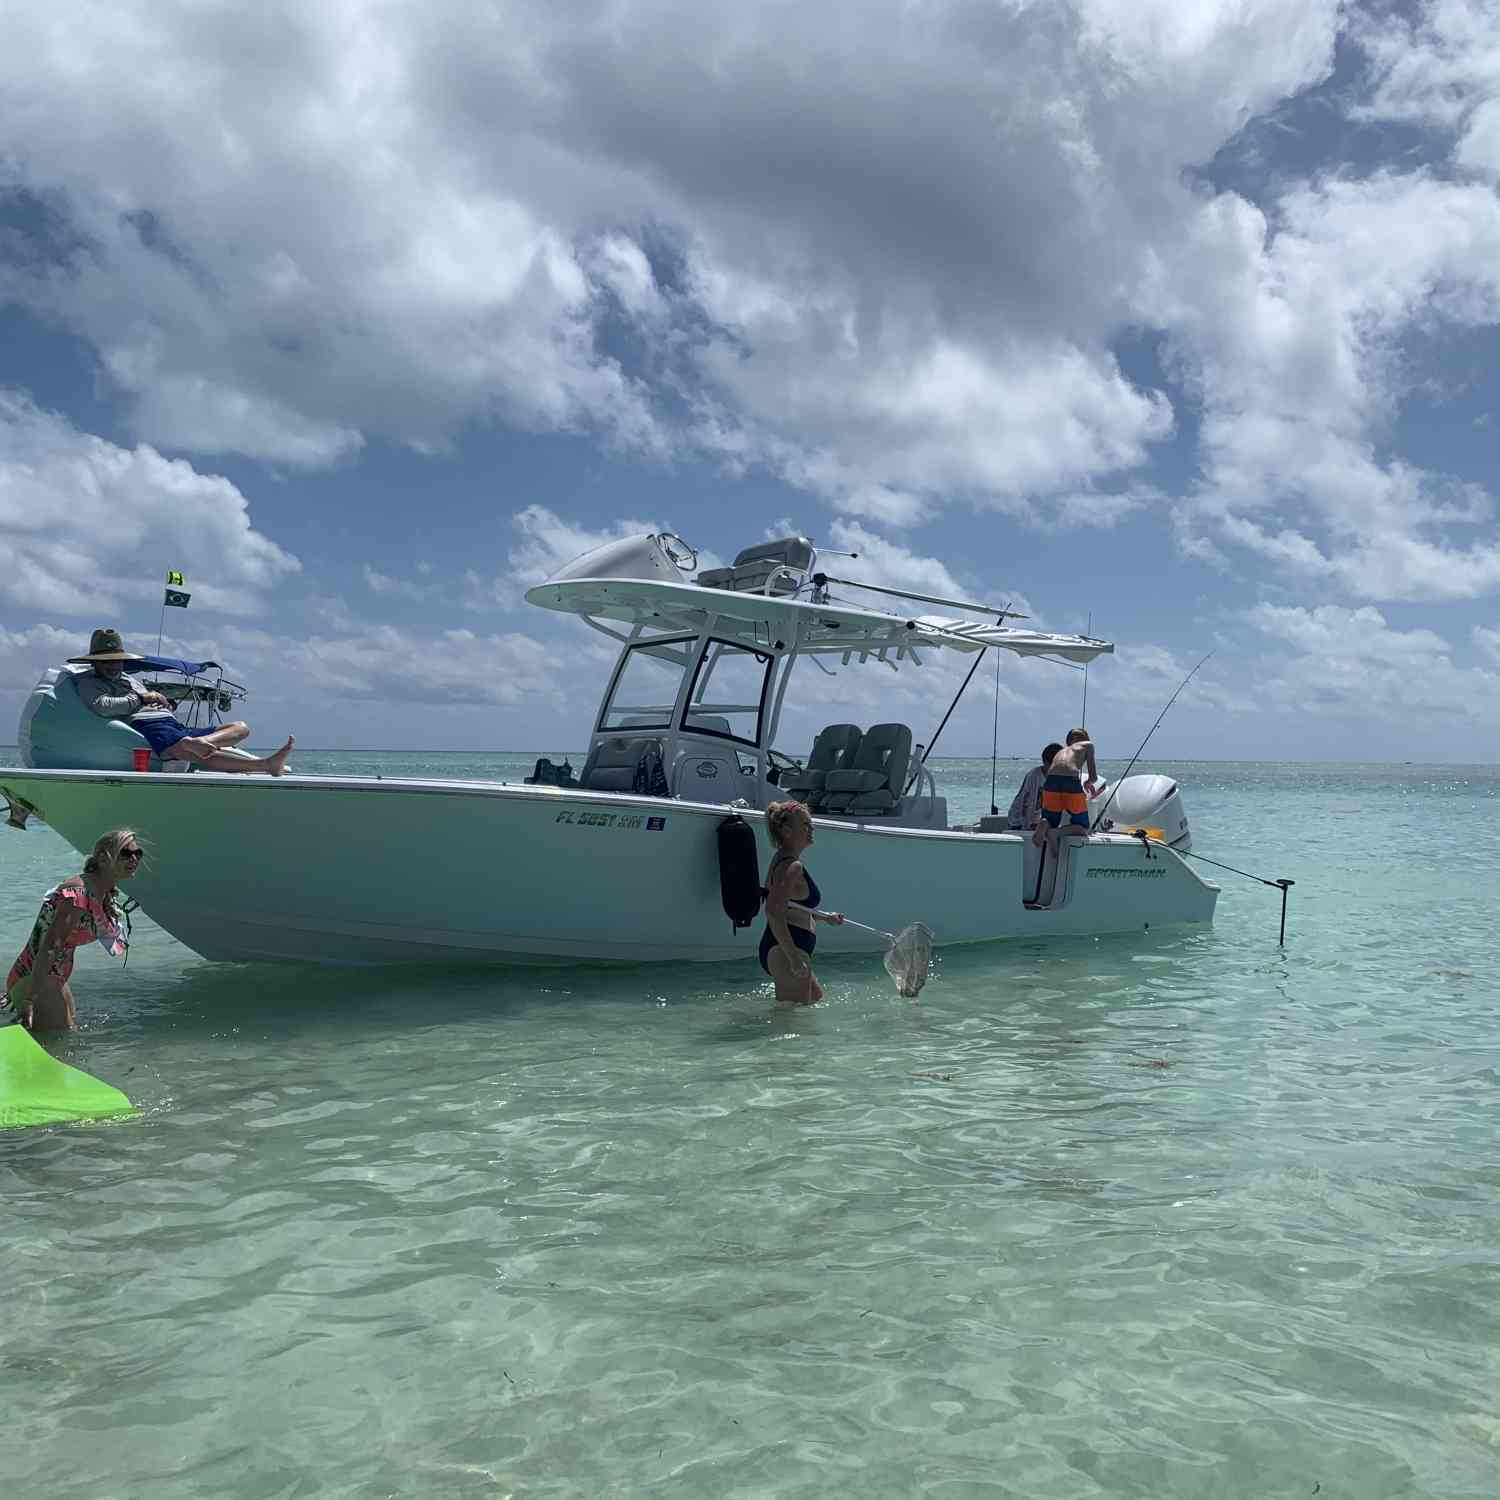 Title: Sandbar Day - On board their Sportsman Open 282TE Center Console - Location: Islamorada. Participating in the Photo Contest #SportsmanMay2021